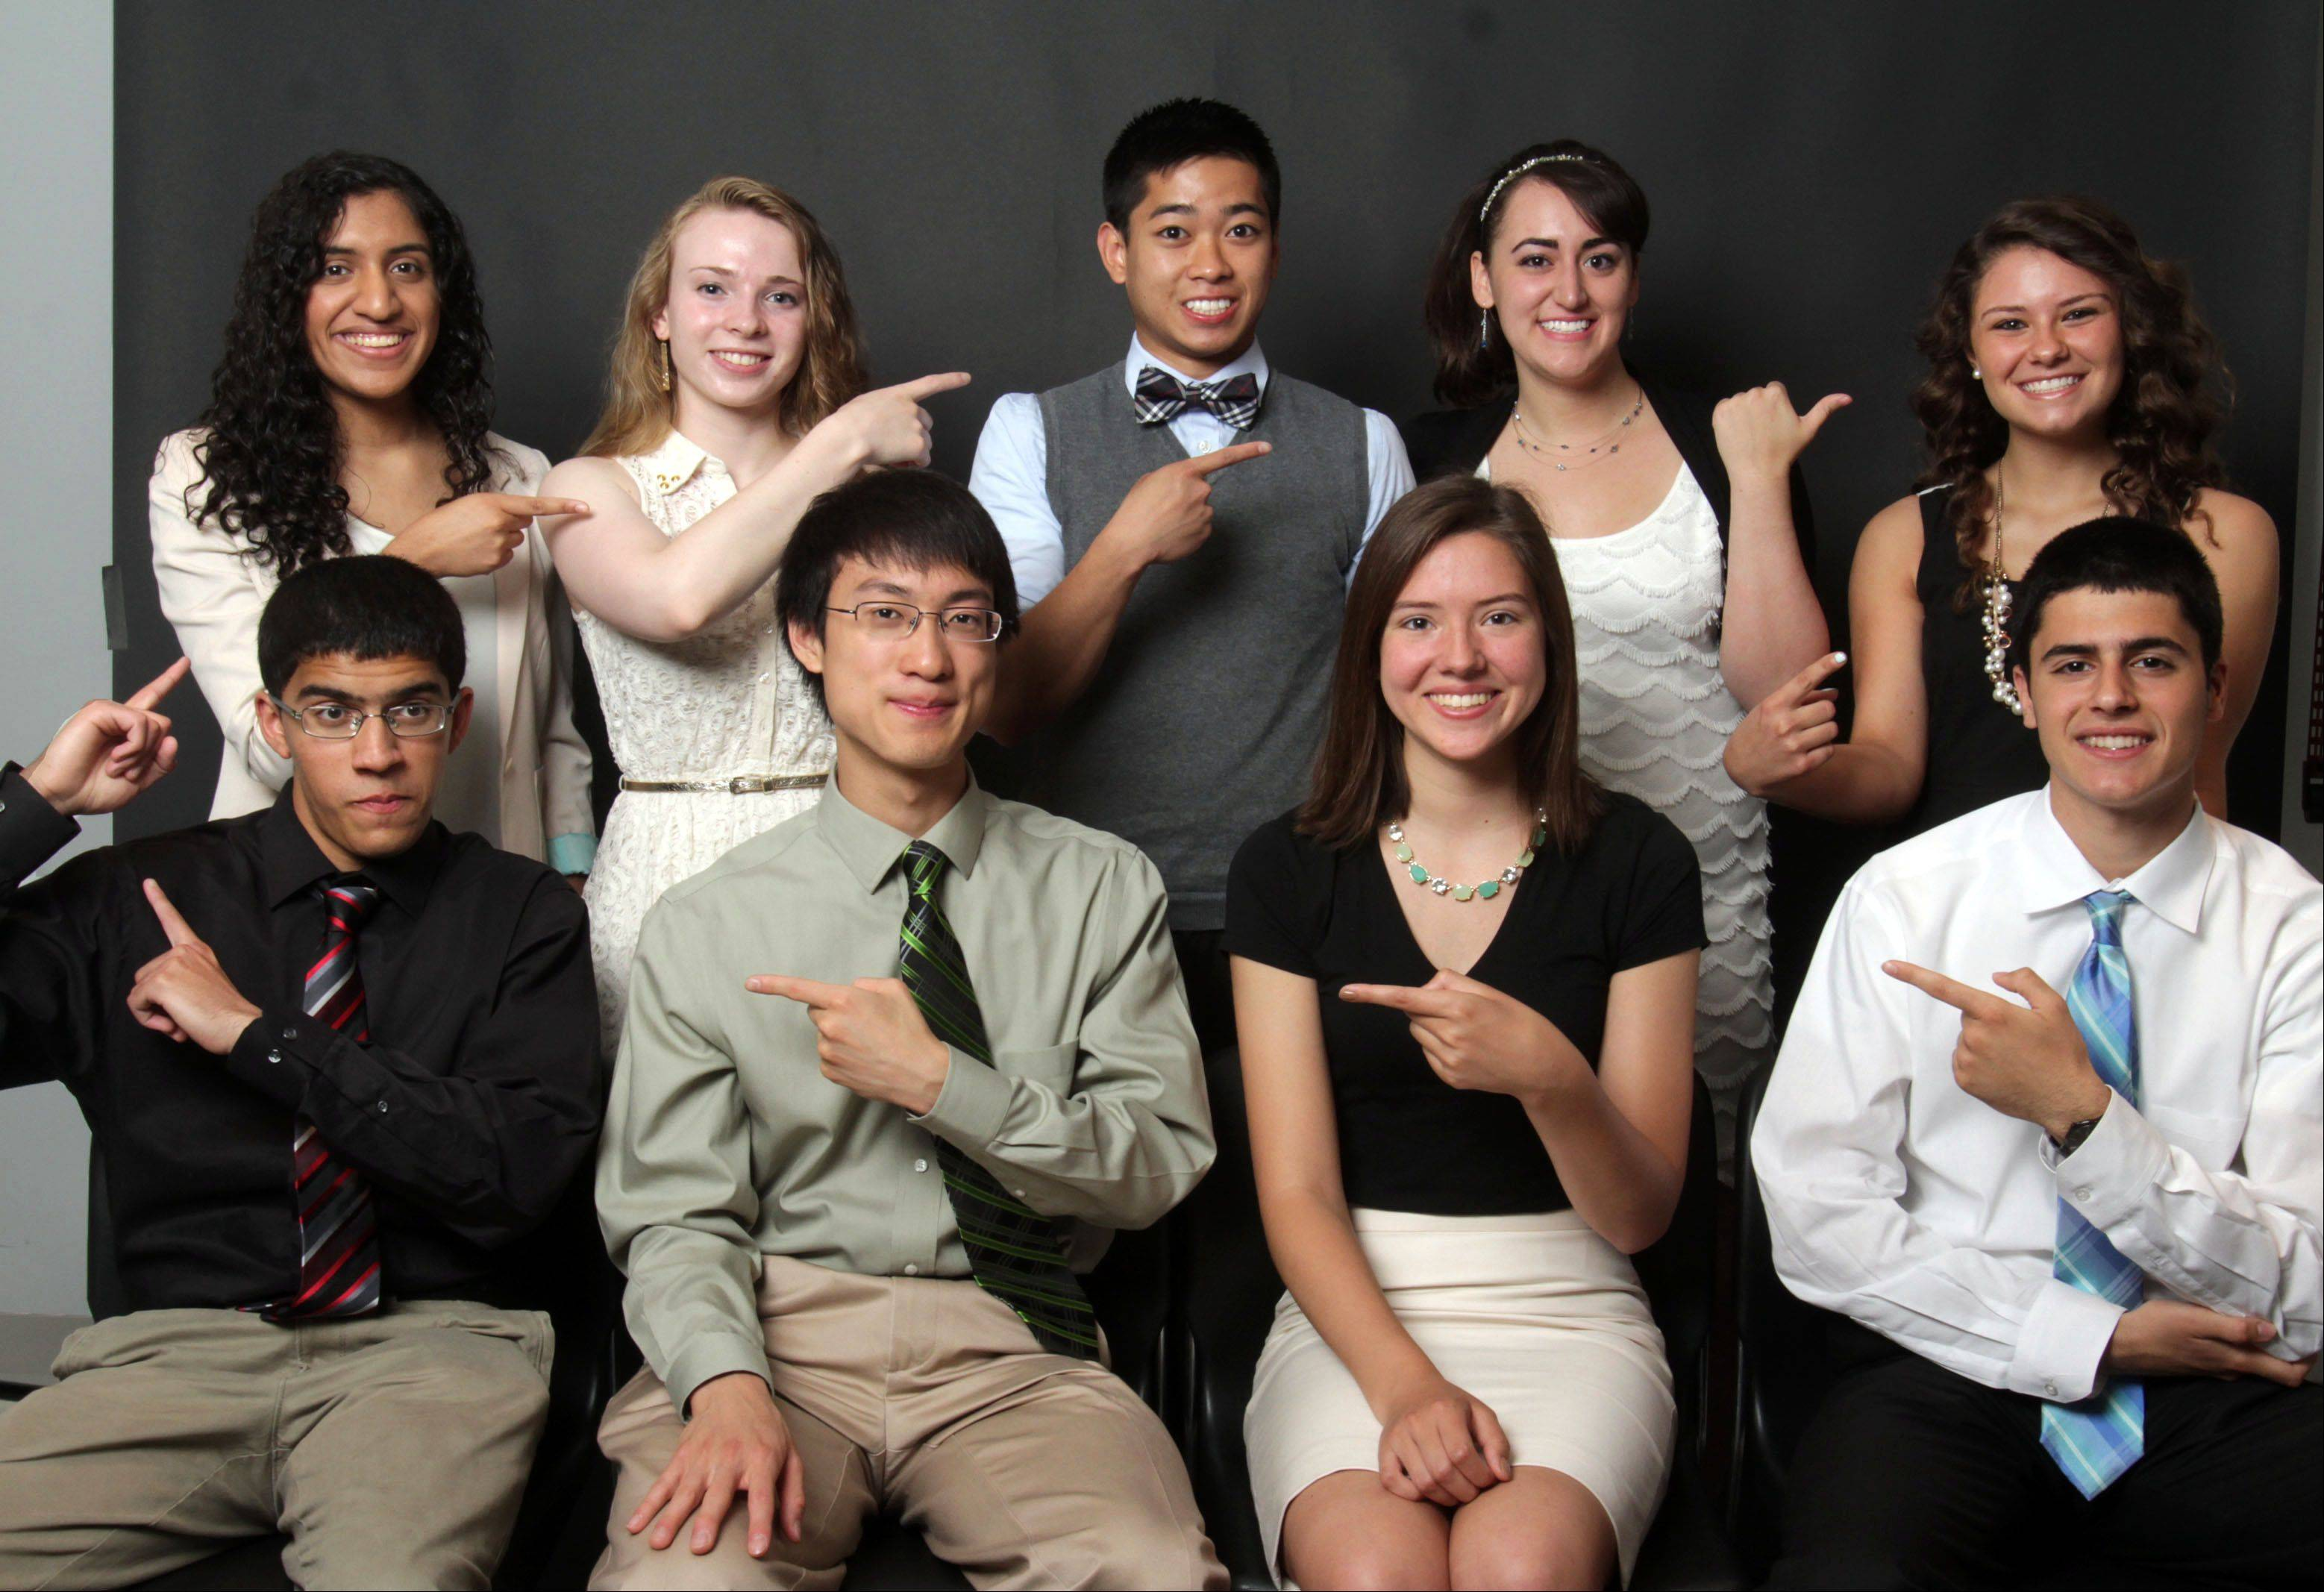 The 2012-13 Daily Herald Lake County Academic Team is: (front row, left to right) Nishad Phadke of Libertyville High School, Justin Doong of Adlai E. Stevenson High School, Emma Castanos of Warren Township High School, Matthew Tabrizi of Vernon Hills High School, (back row left to right) Neeta Abraham of Warren Township High School, Adele Padgett of Adlai E. Stevenson High School, Daniel Santos of Carmel Catholic High School, Brienne Lubor of Carmel Catholic High School, and Kaitlyn Norum, Grayslake North High School.